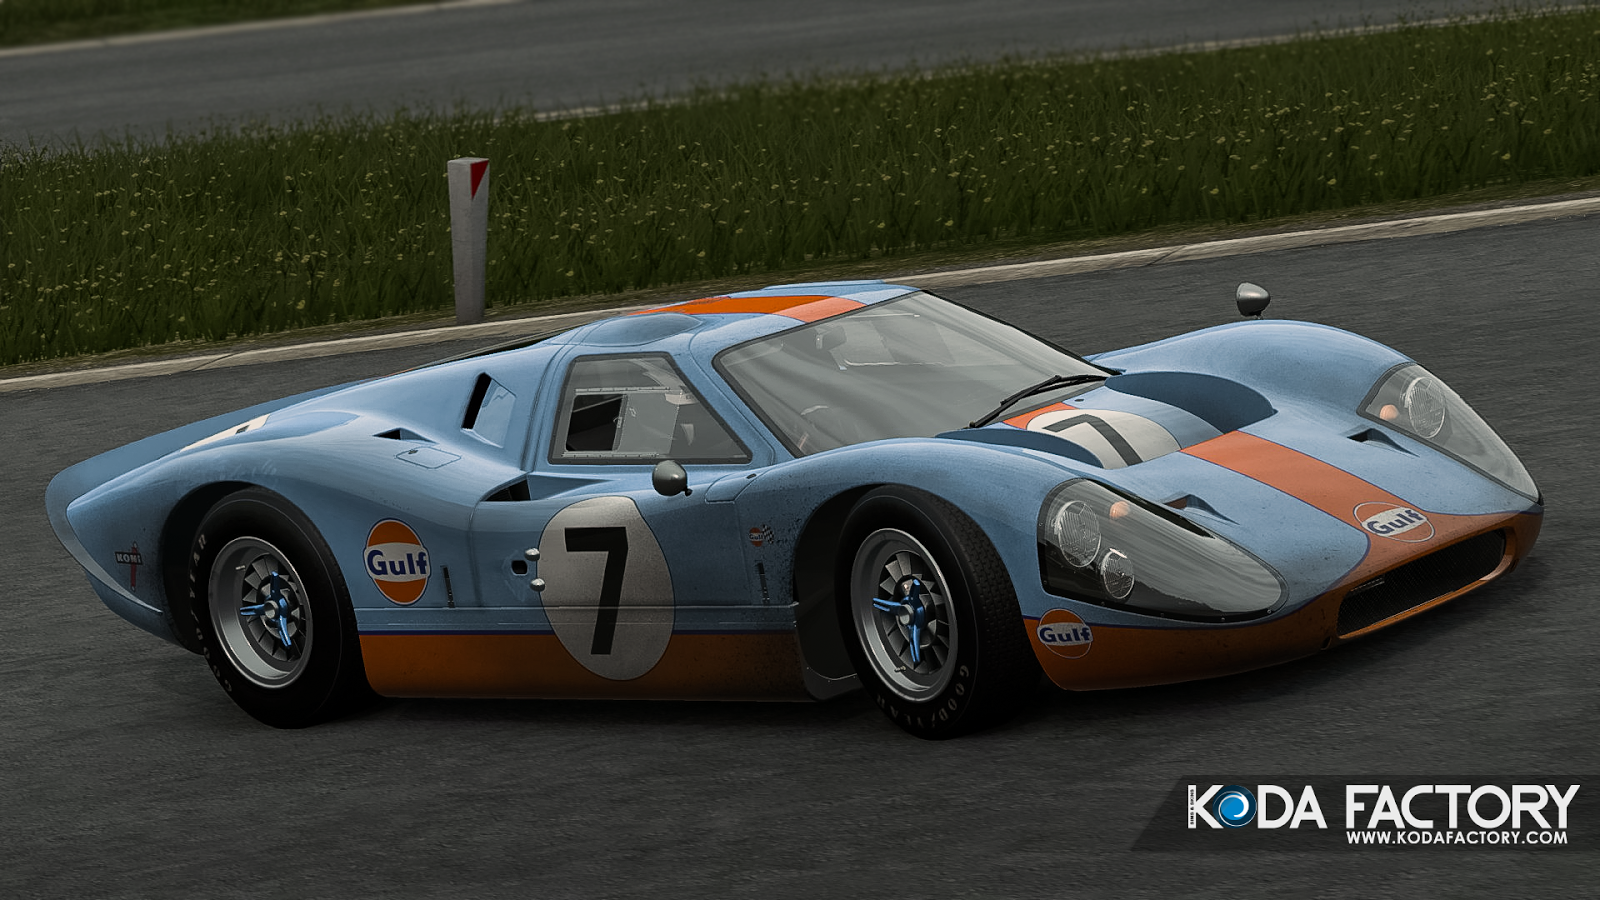 Koda Factory Ford Gt Mkiv Gulf  Pc Description From Kodafactory Blogspot Com I Searched For This On Bing Com Images